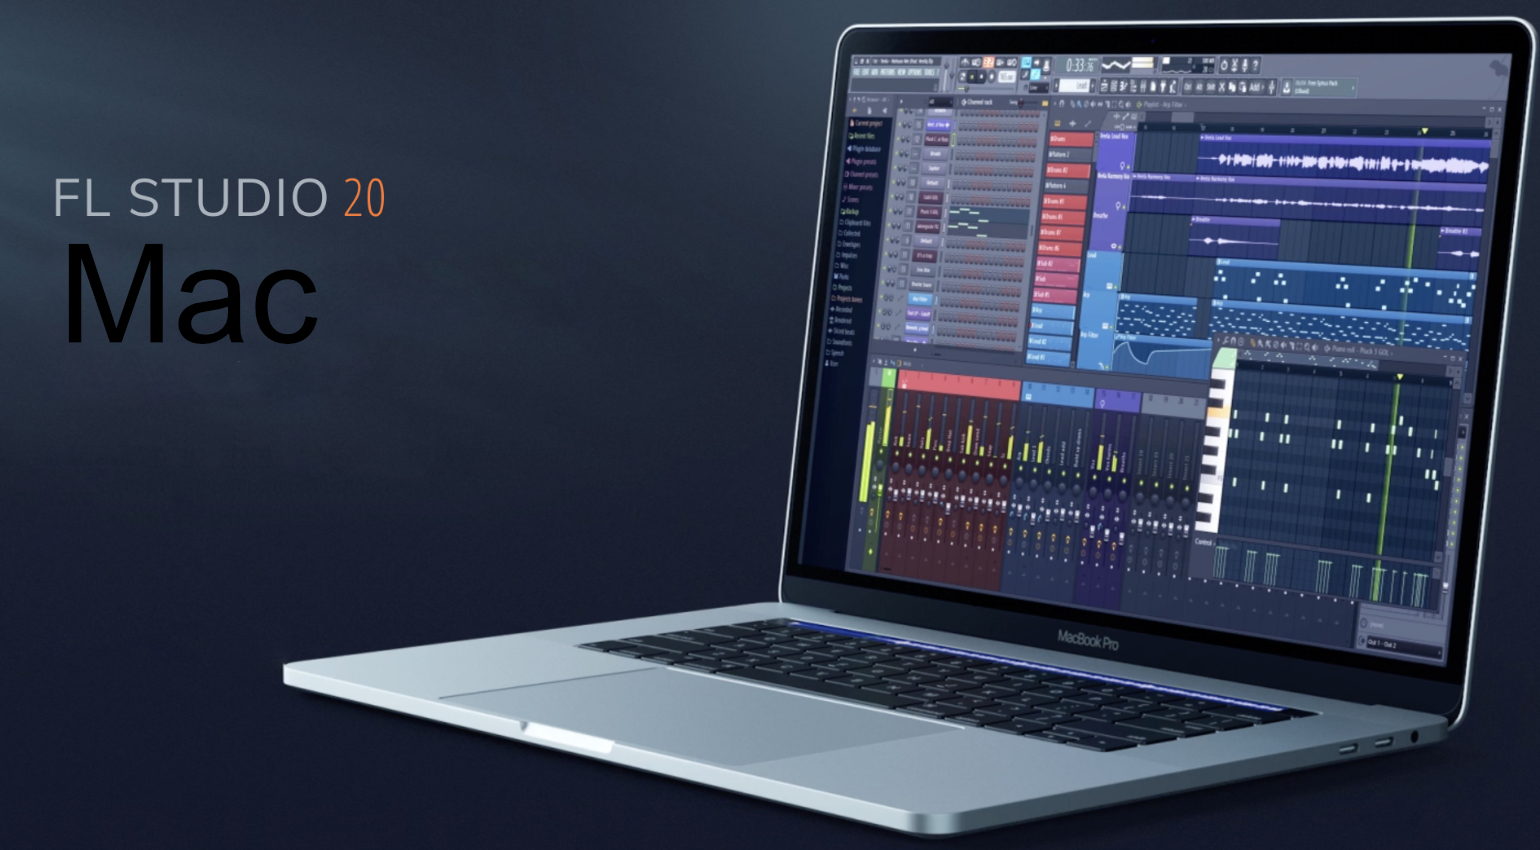 FL Studio 20.1.1.175 Crack + Registration Key Free Download [Win/Mac]